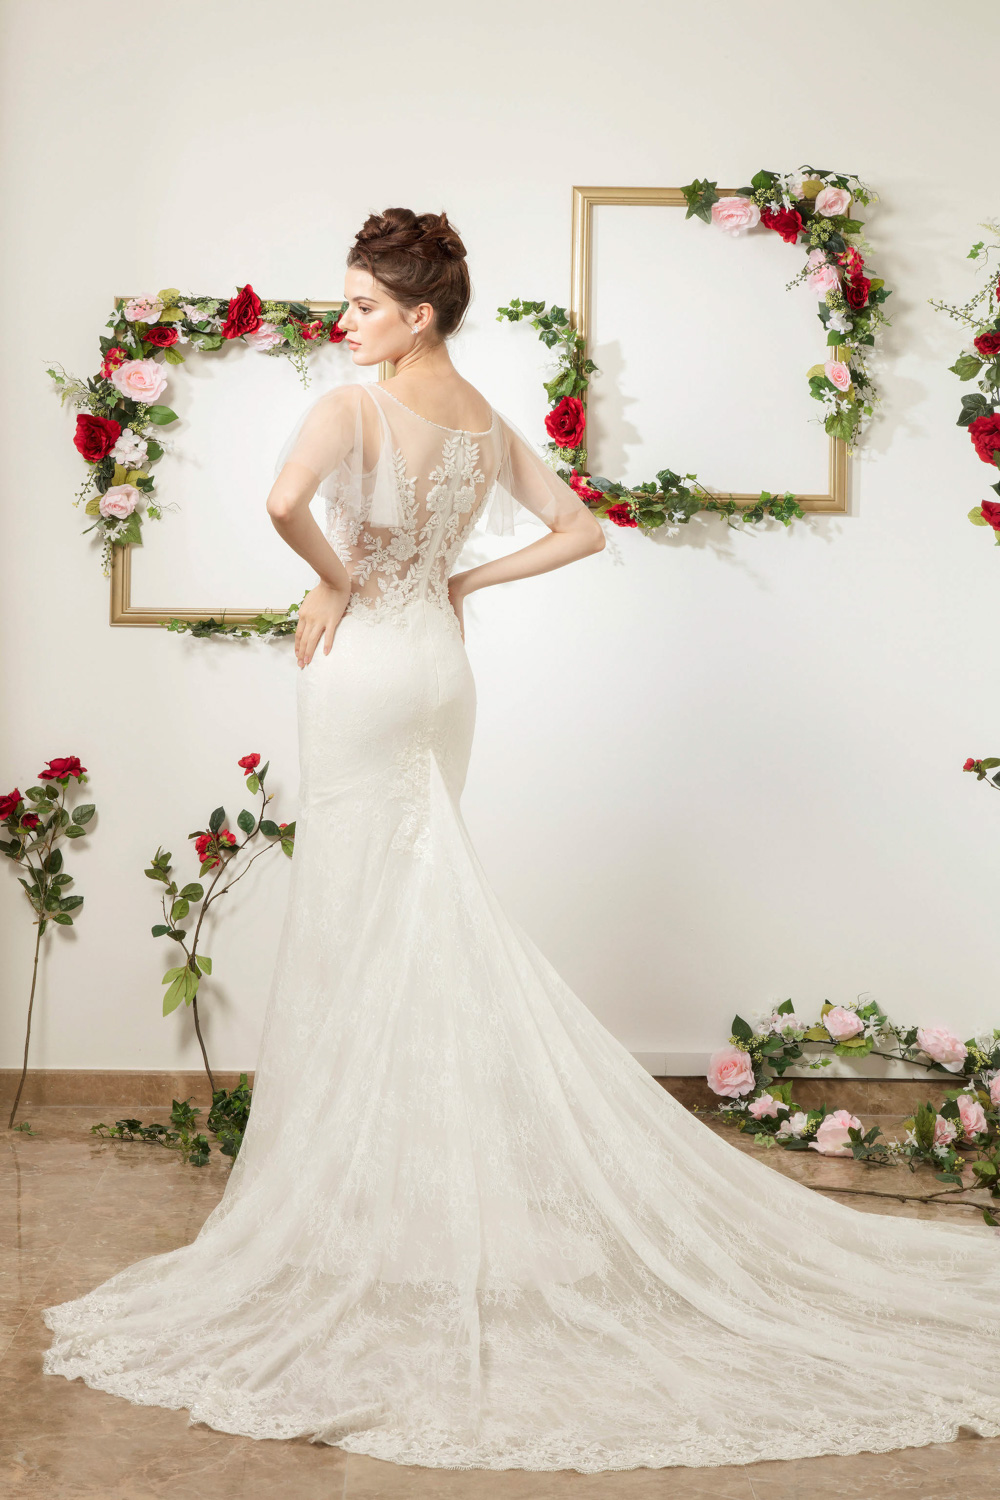 Trumpet silhouette wedding dress with train by CCM Wedding